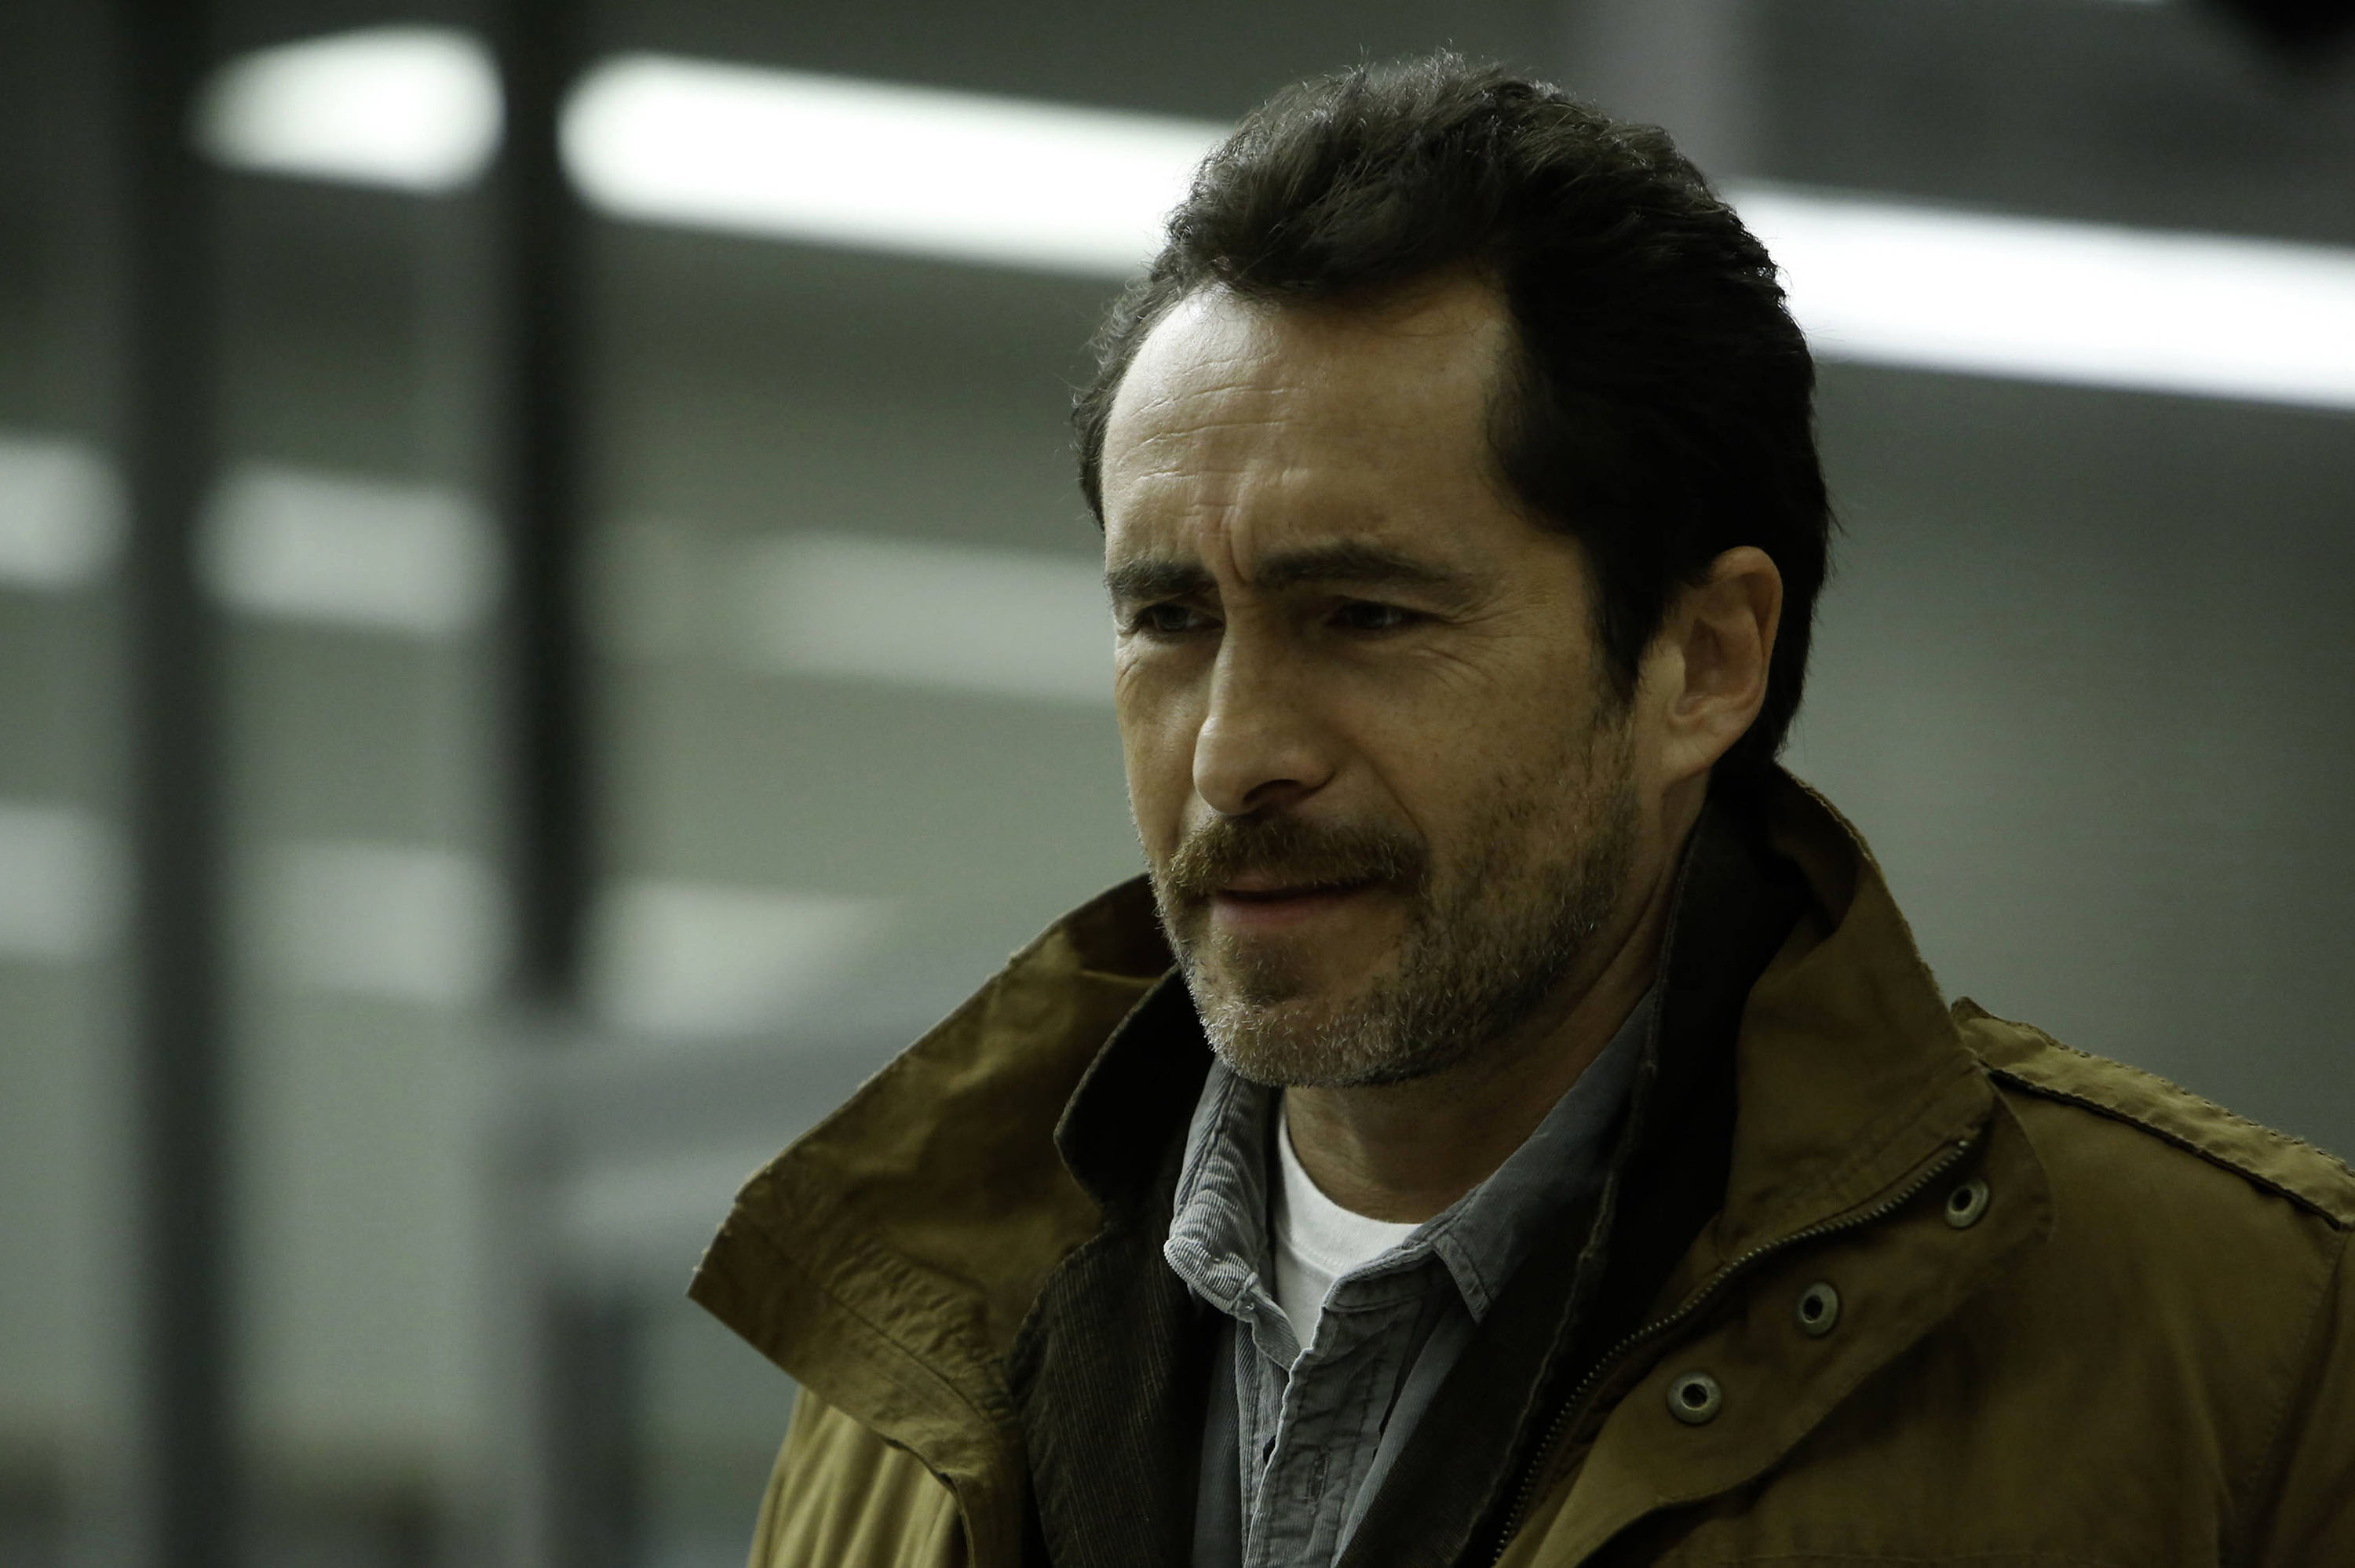 ABC's 'Gran Hotel' Remake Casts Oscar-Nominated Actor Demian Bichir